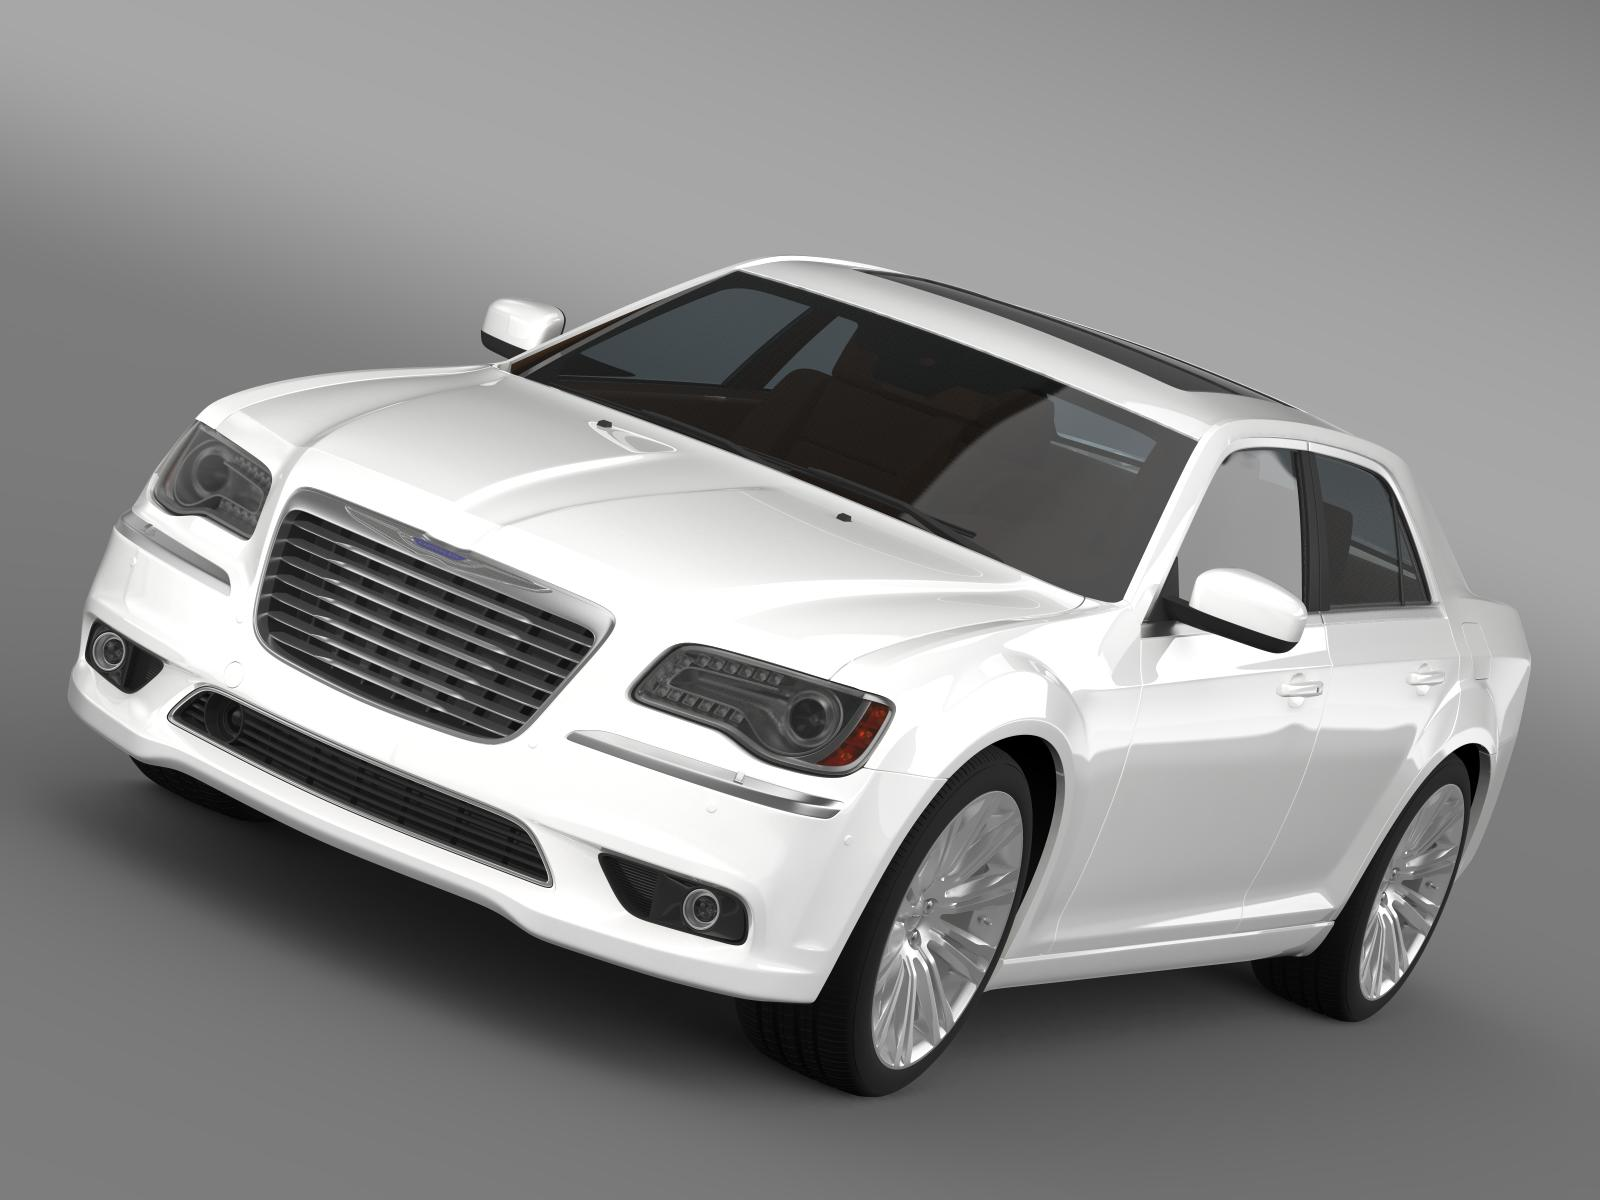 chrysler 300c 2013 3d model 3ds max fbx c4d lwo ma mb hrc xsi obj 205536